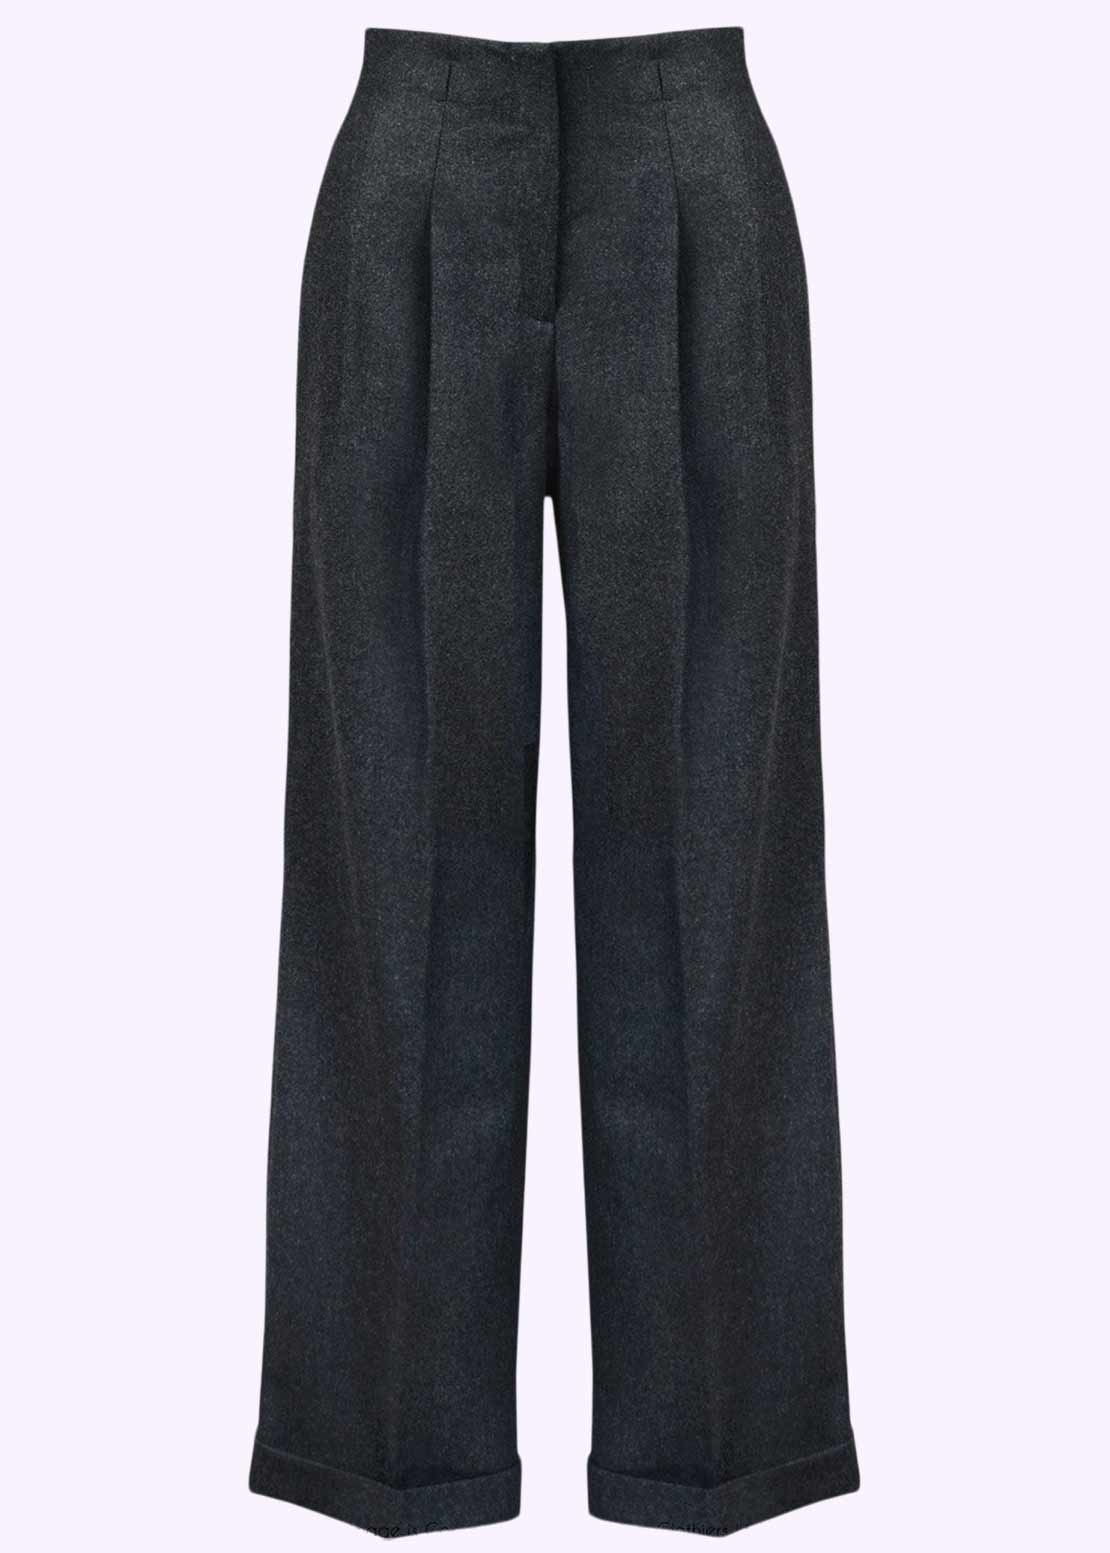 Gray Marlene pants with wide legs vintage style